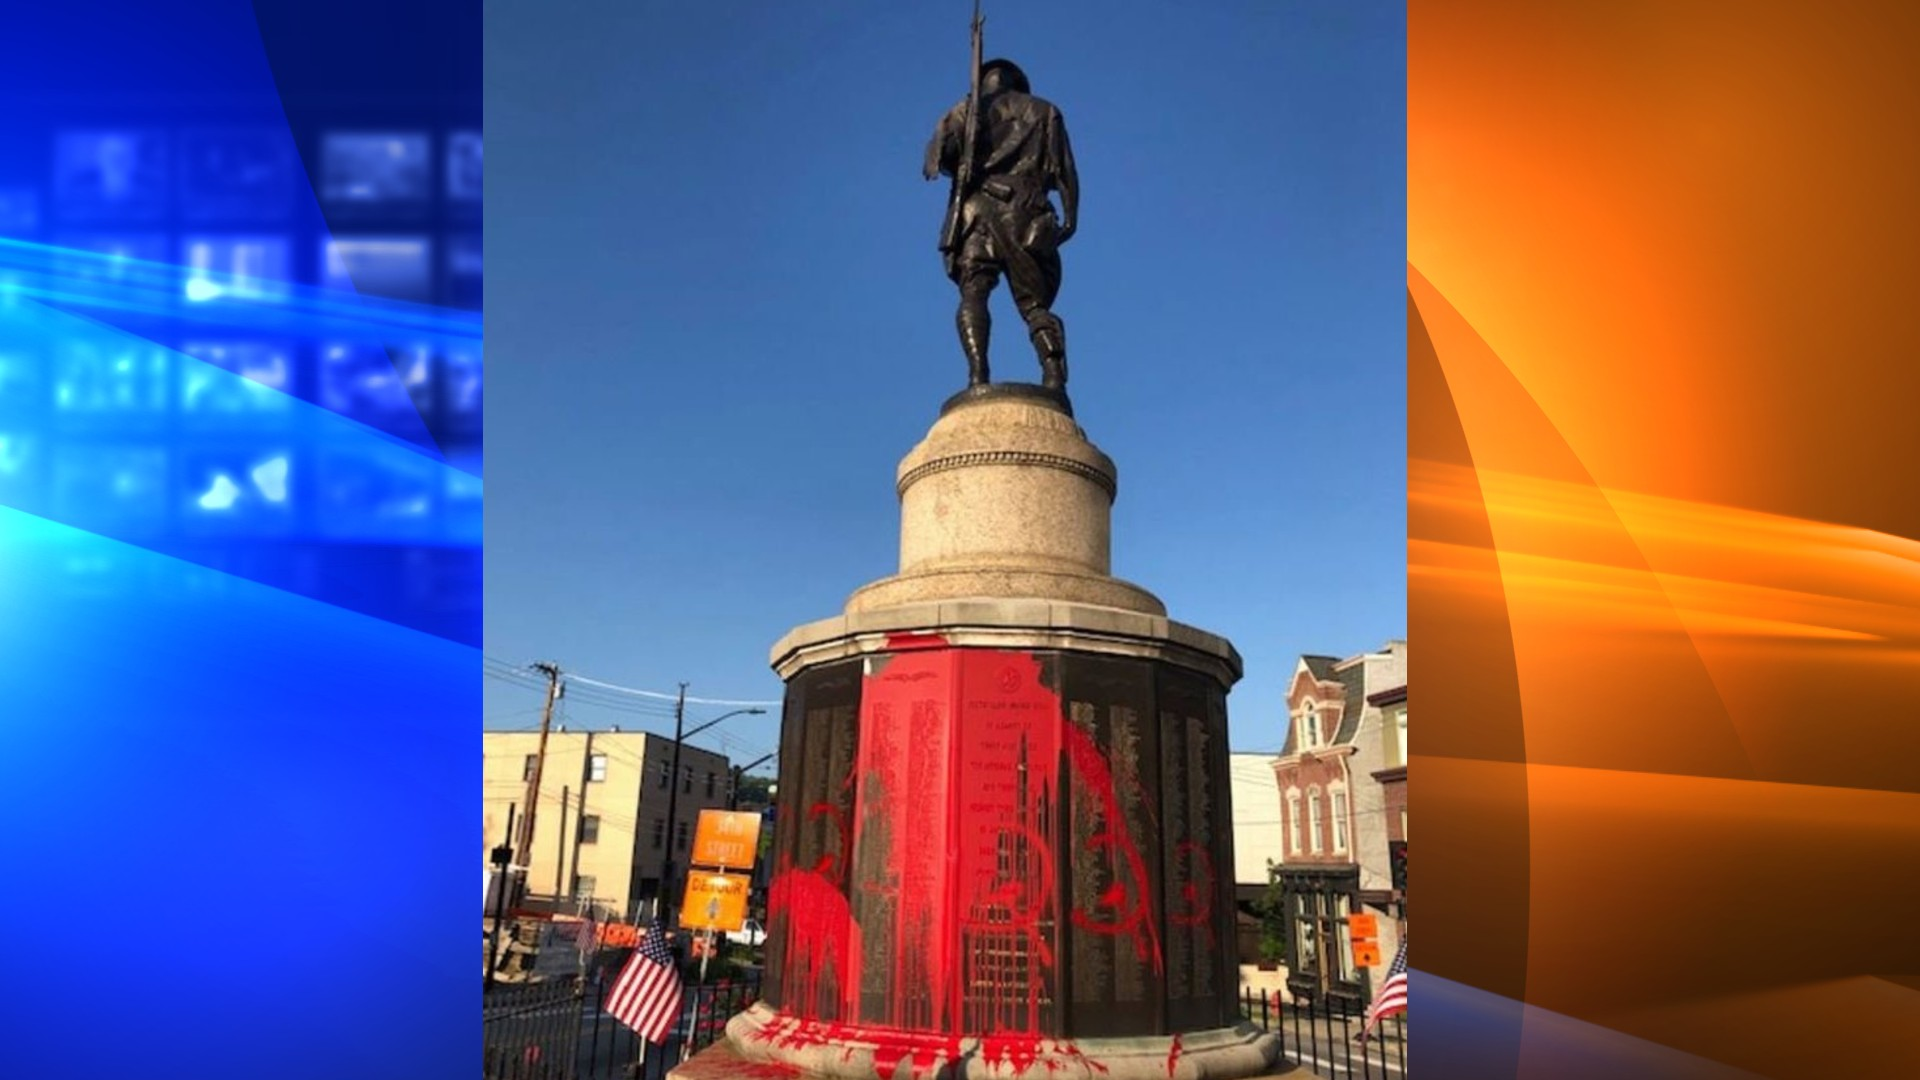 Pittsburgh Police are investigating after a WWI War Memorial at Doughboy Square in Lawrenceville was vandalized overnight, according to a release from the Pittsburgh Bureau of Police. (Pittsburgh Bureau of Police via CNN Wire)